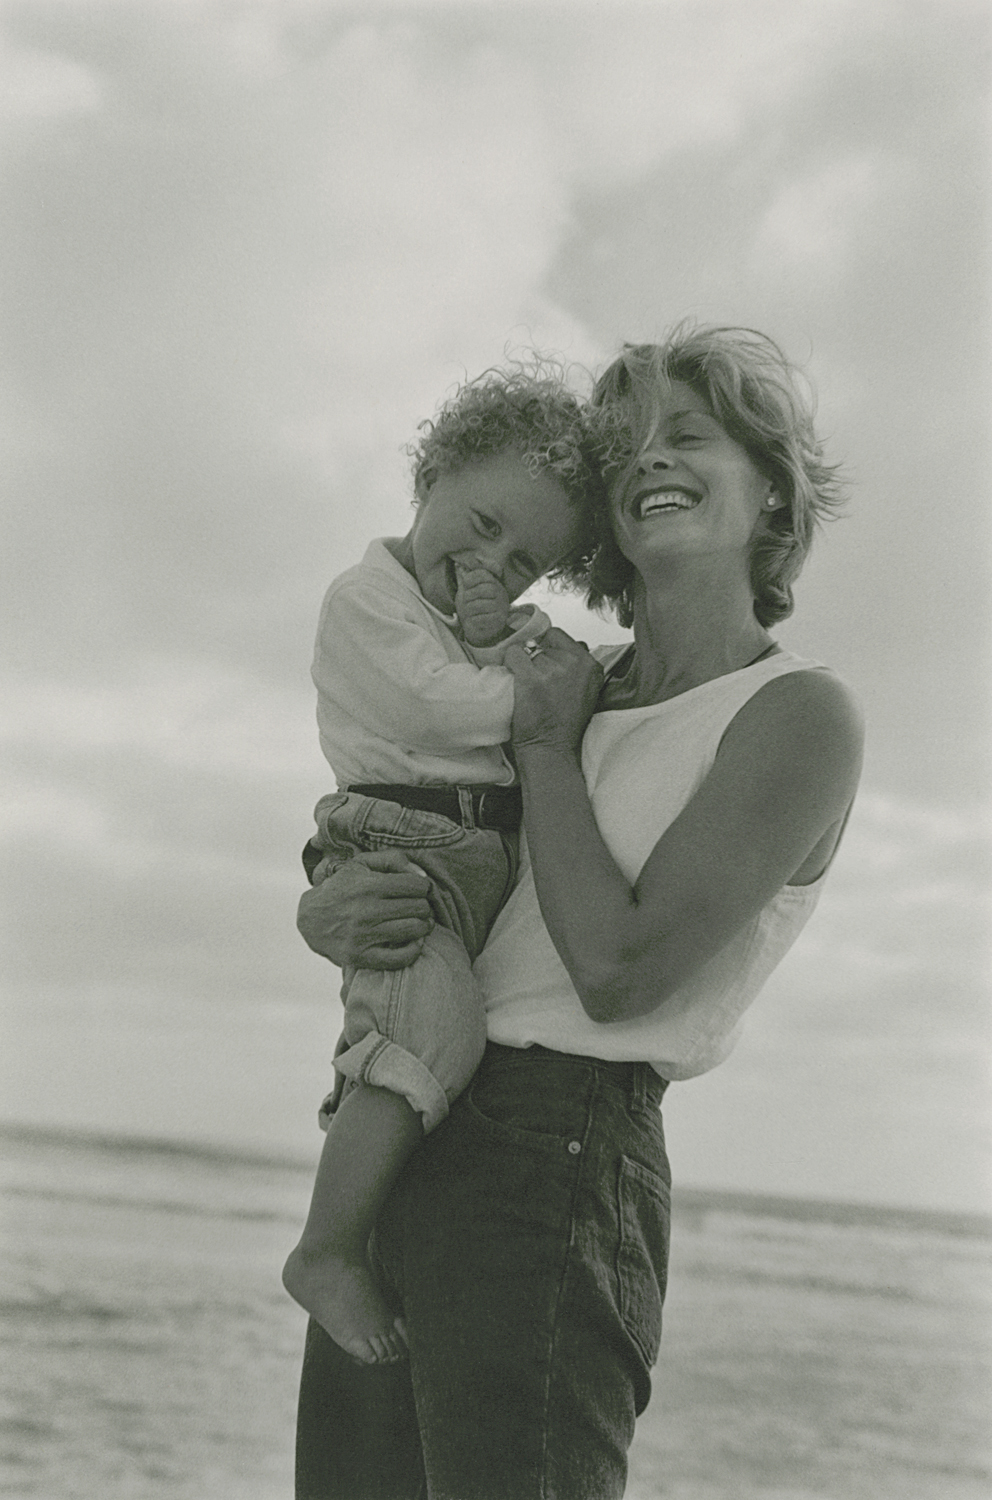 Robynn and Nathan, Del Mar, 1997